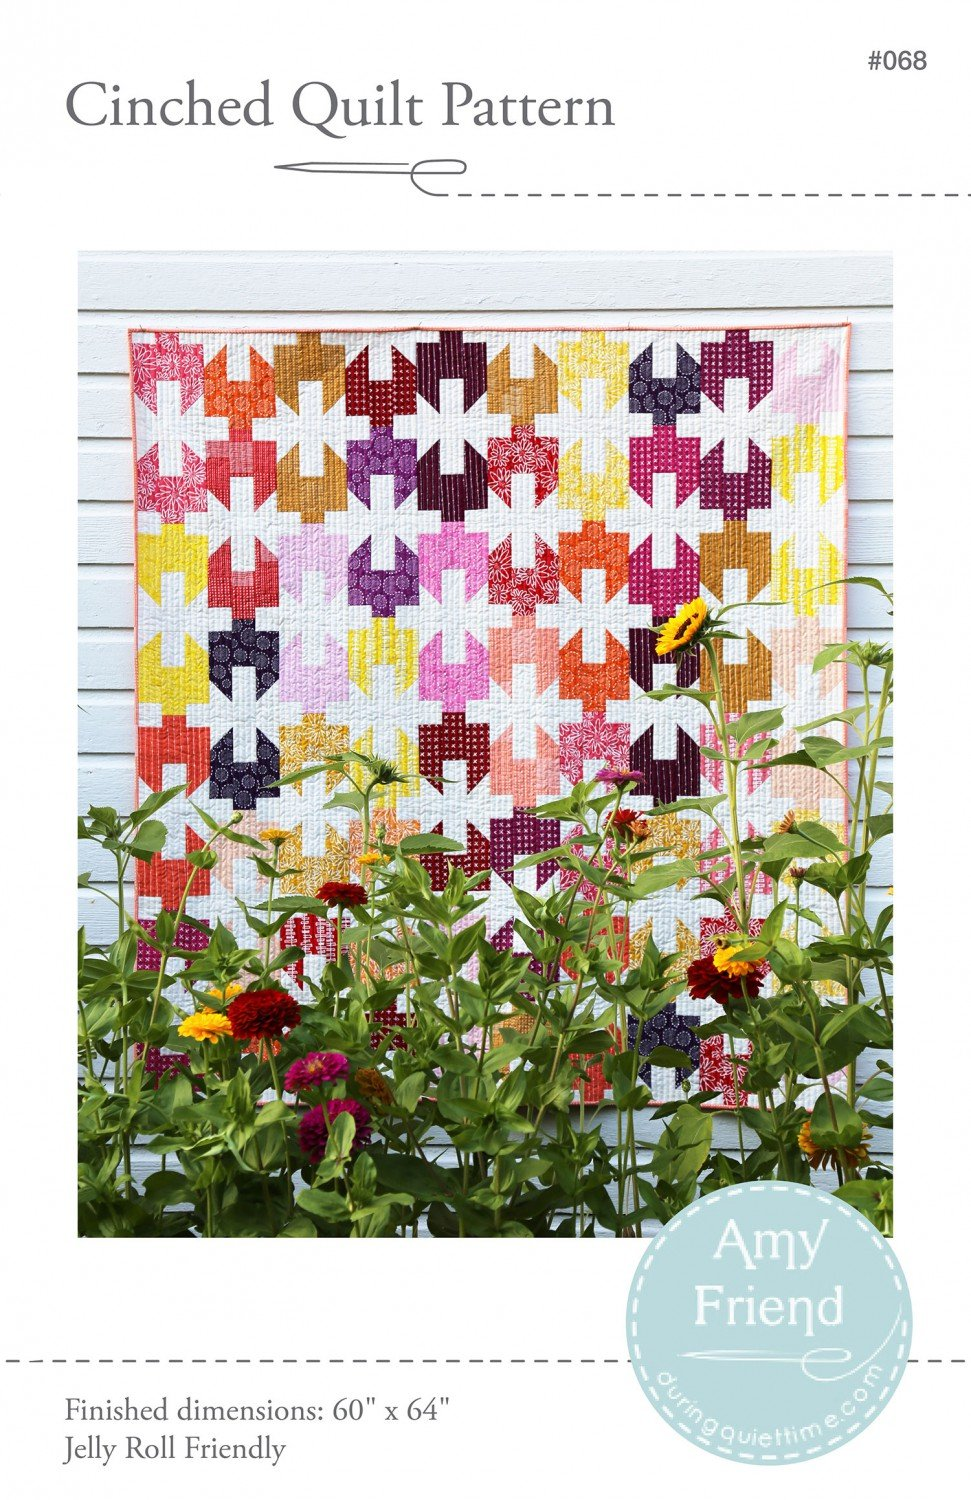 Cinched Quilt Pattern- Amy Friend